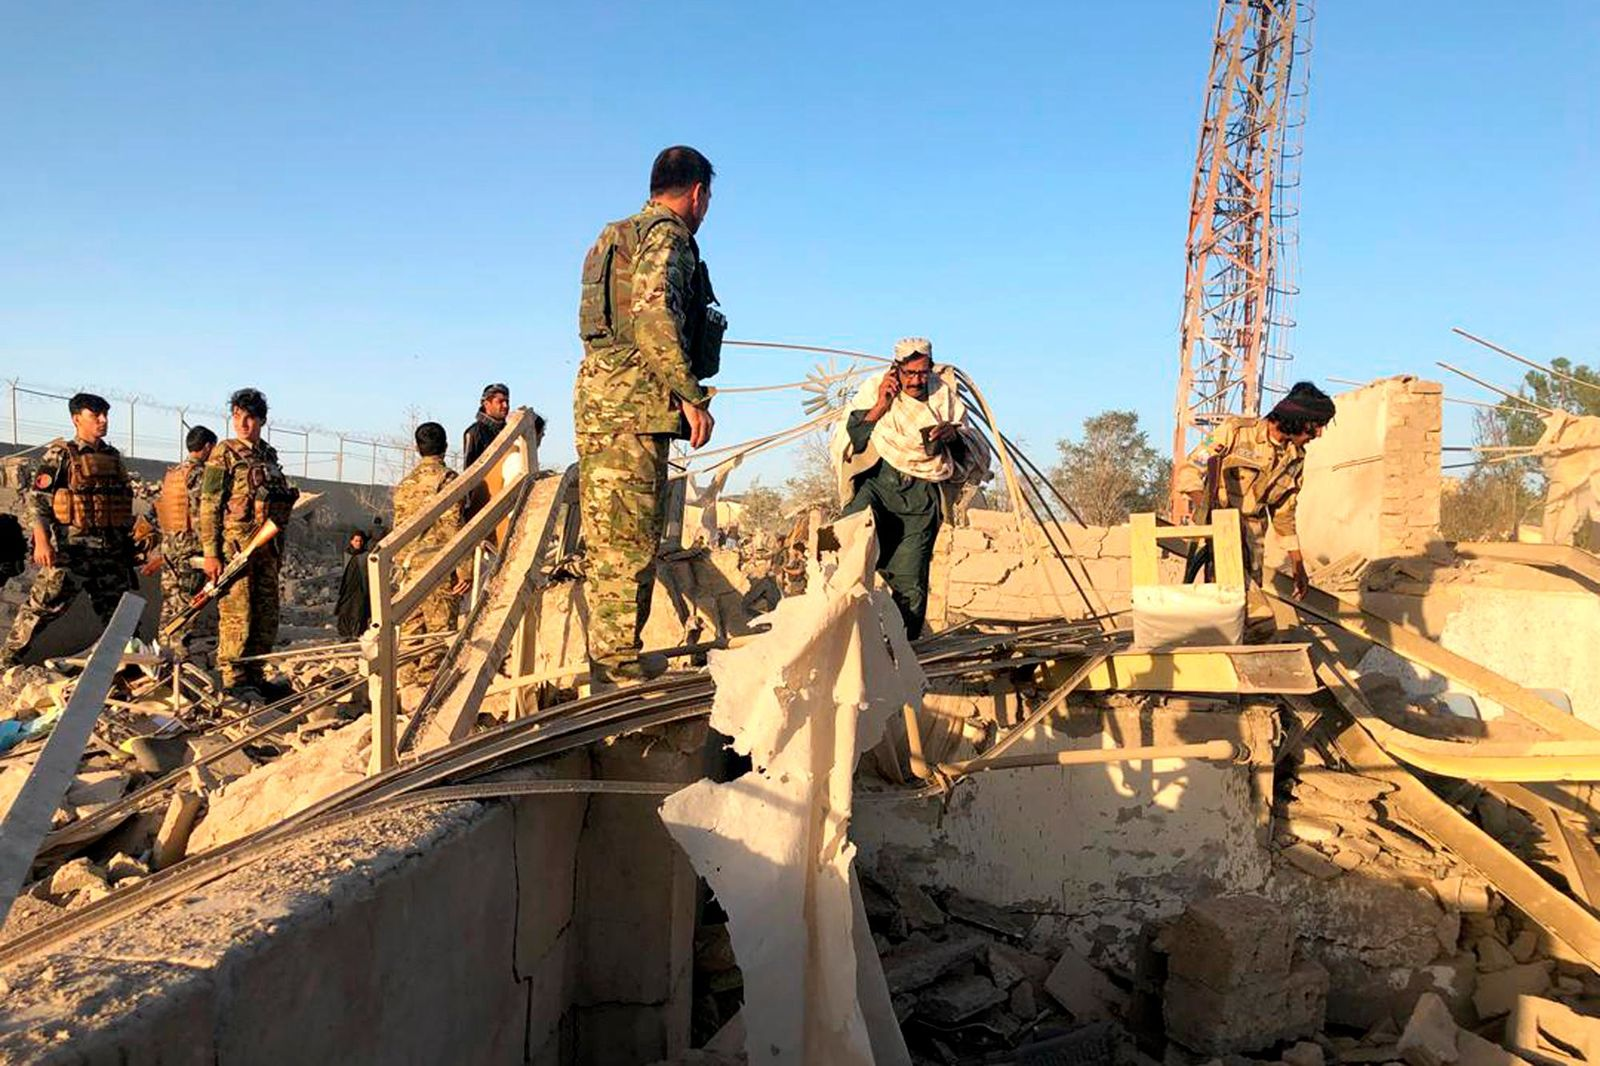 Afghan security members and people work at the site of a suicide attack in Zabul, Afghanistan, Thursday, Sept. 19, 2019. (AP Photo/Ahmad Wali Sarhadi)